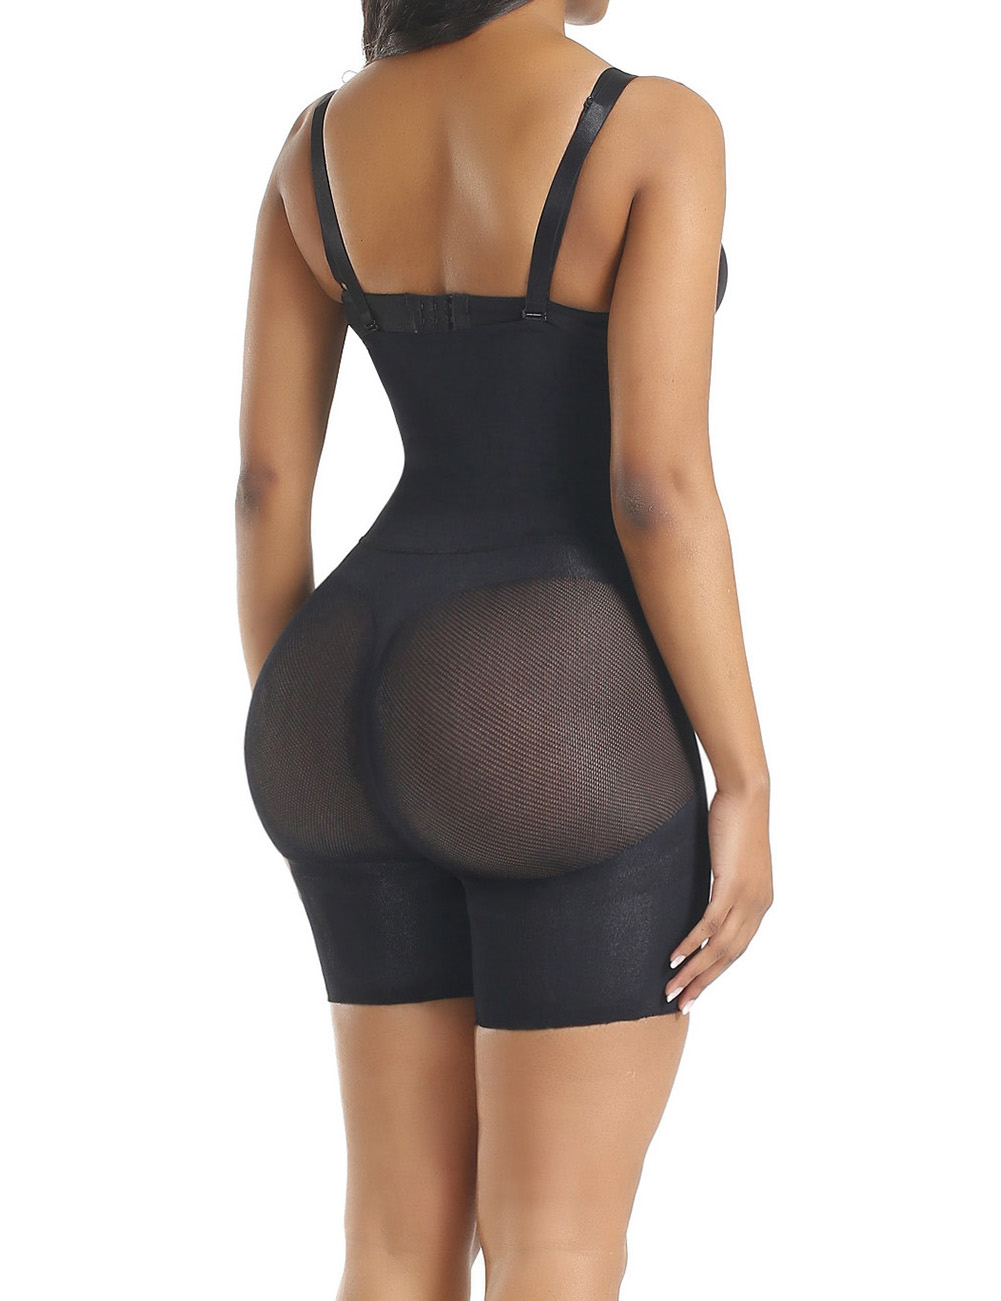 //cdn.affectcloud.com/hexinfashion/upload/imgs/Shaper/Body_Shaper/B195082-BK1/B195082-BK1-201911055dc114e67037f.jpg